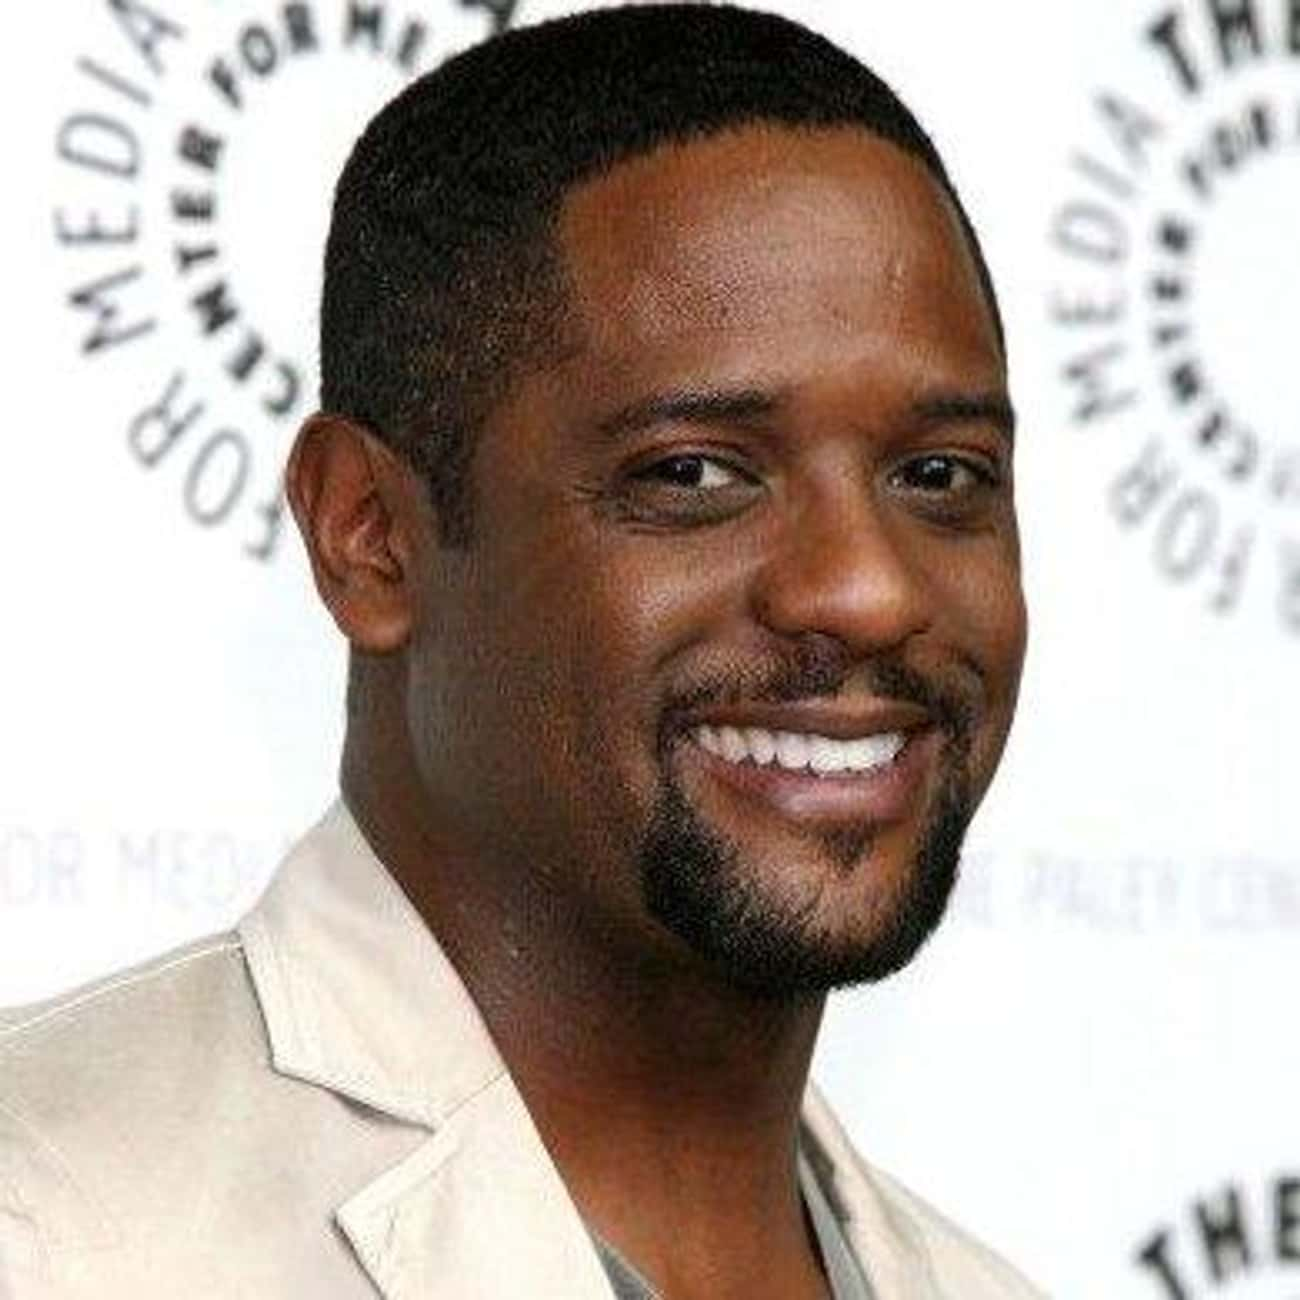 Blair Underwood is listed (or ranked) 1 on the list Hollywood's 10 Best Smiles